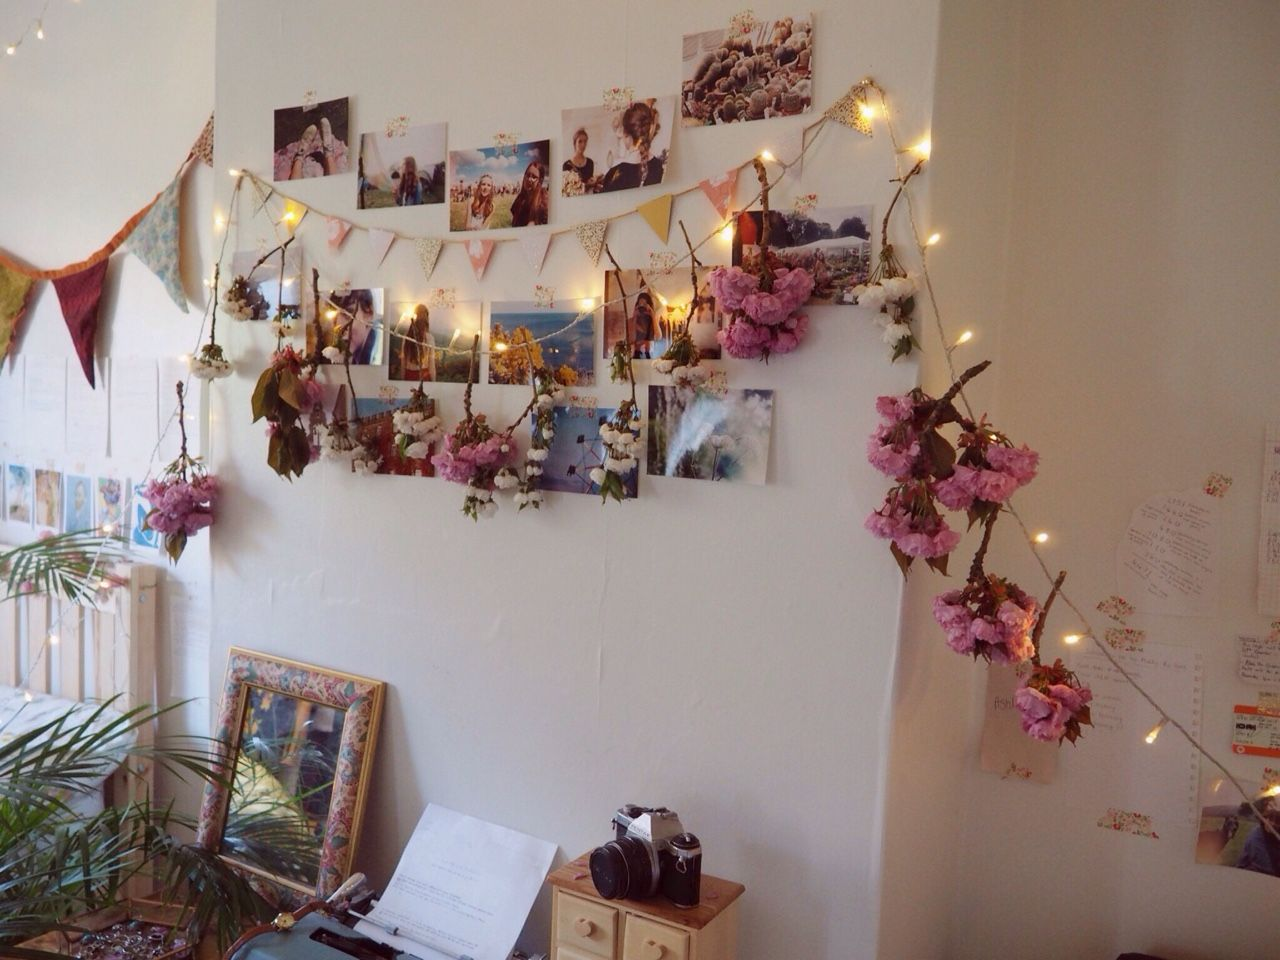 Dorm rooms at stanford everything feels better now  rooms  部屋  pinterest  bedrooms